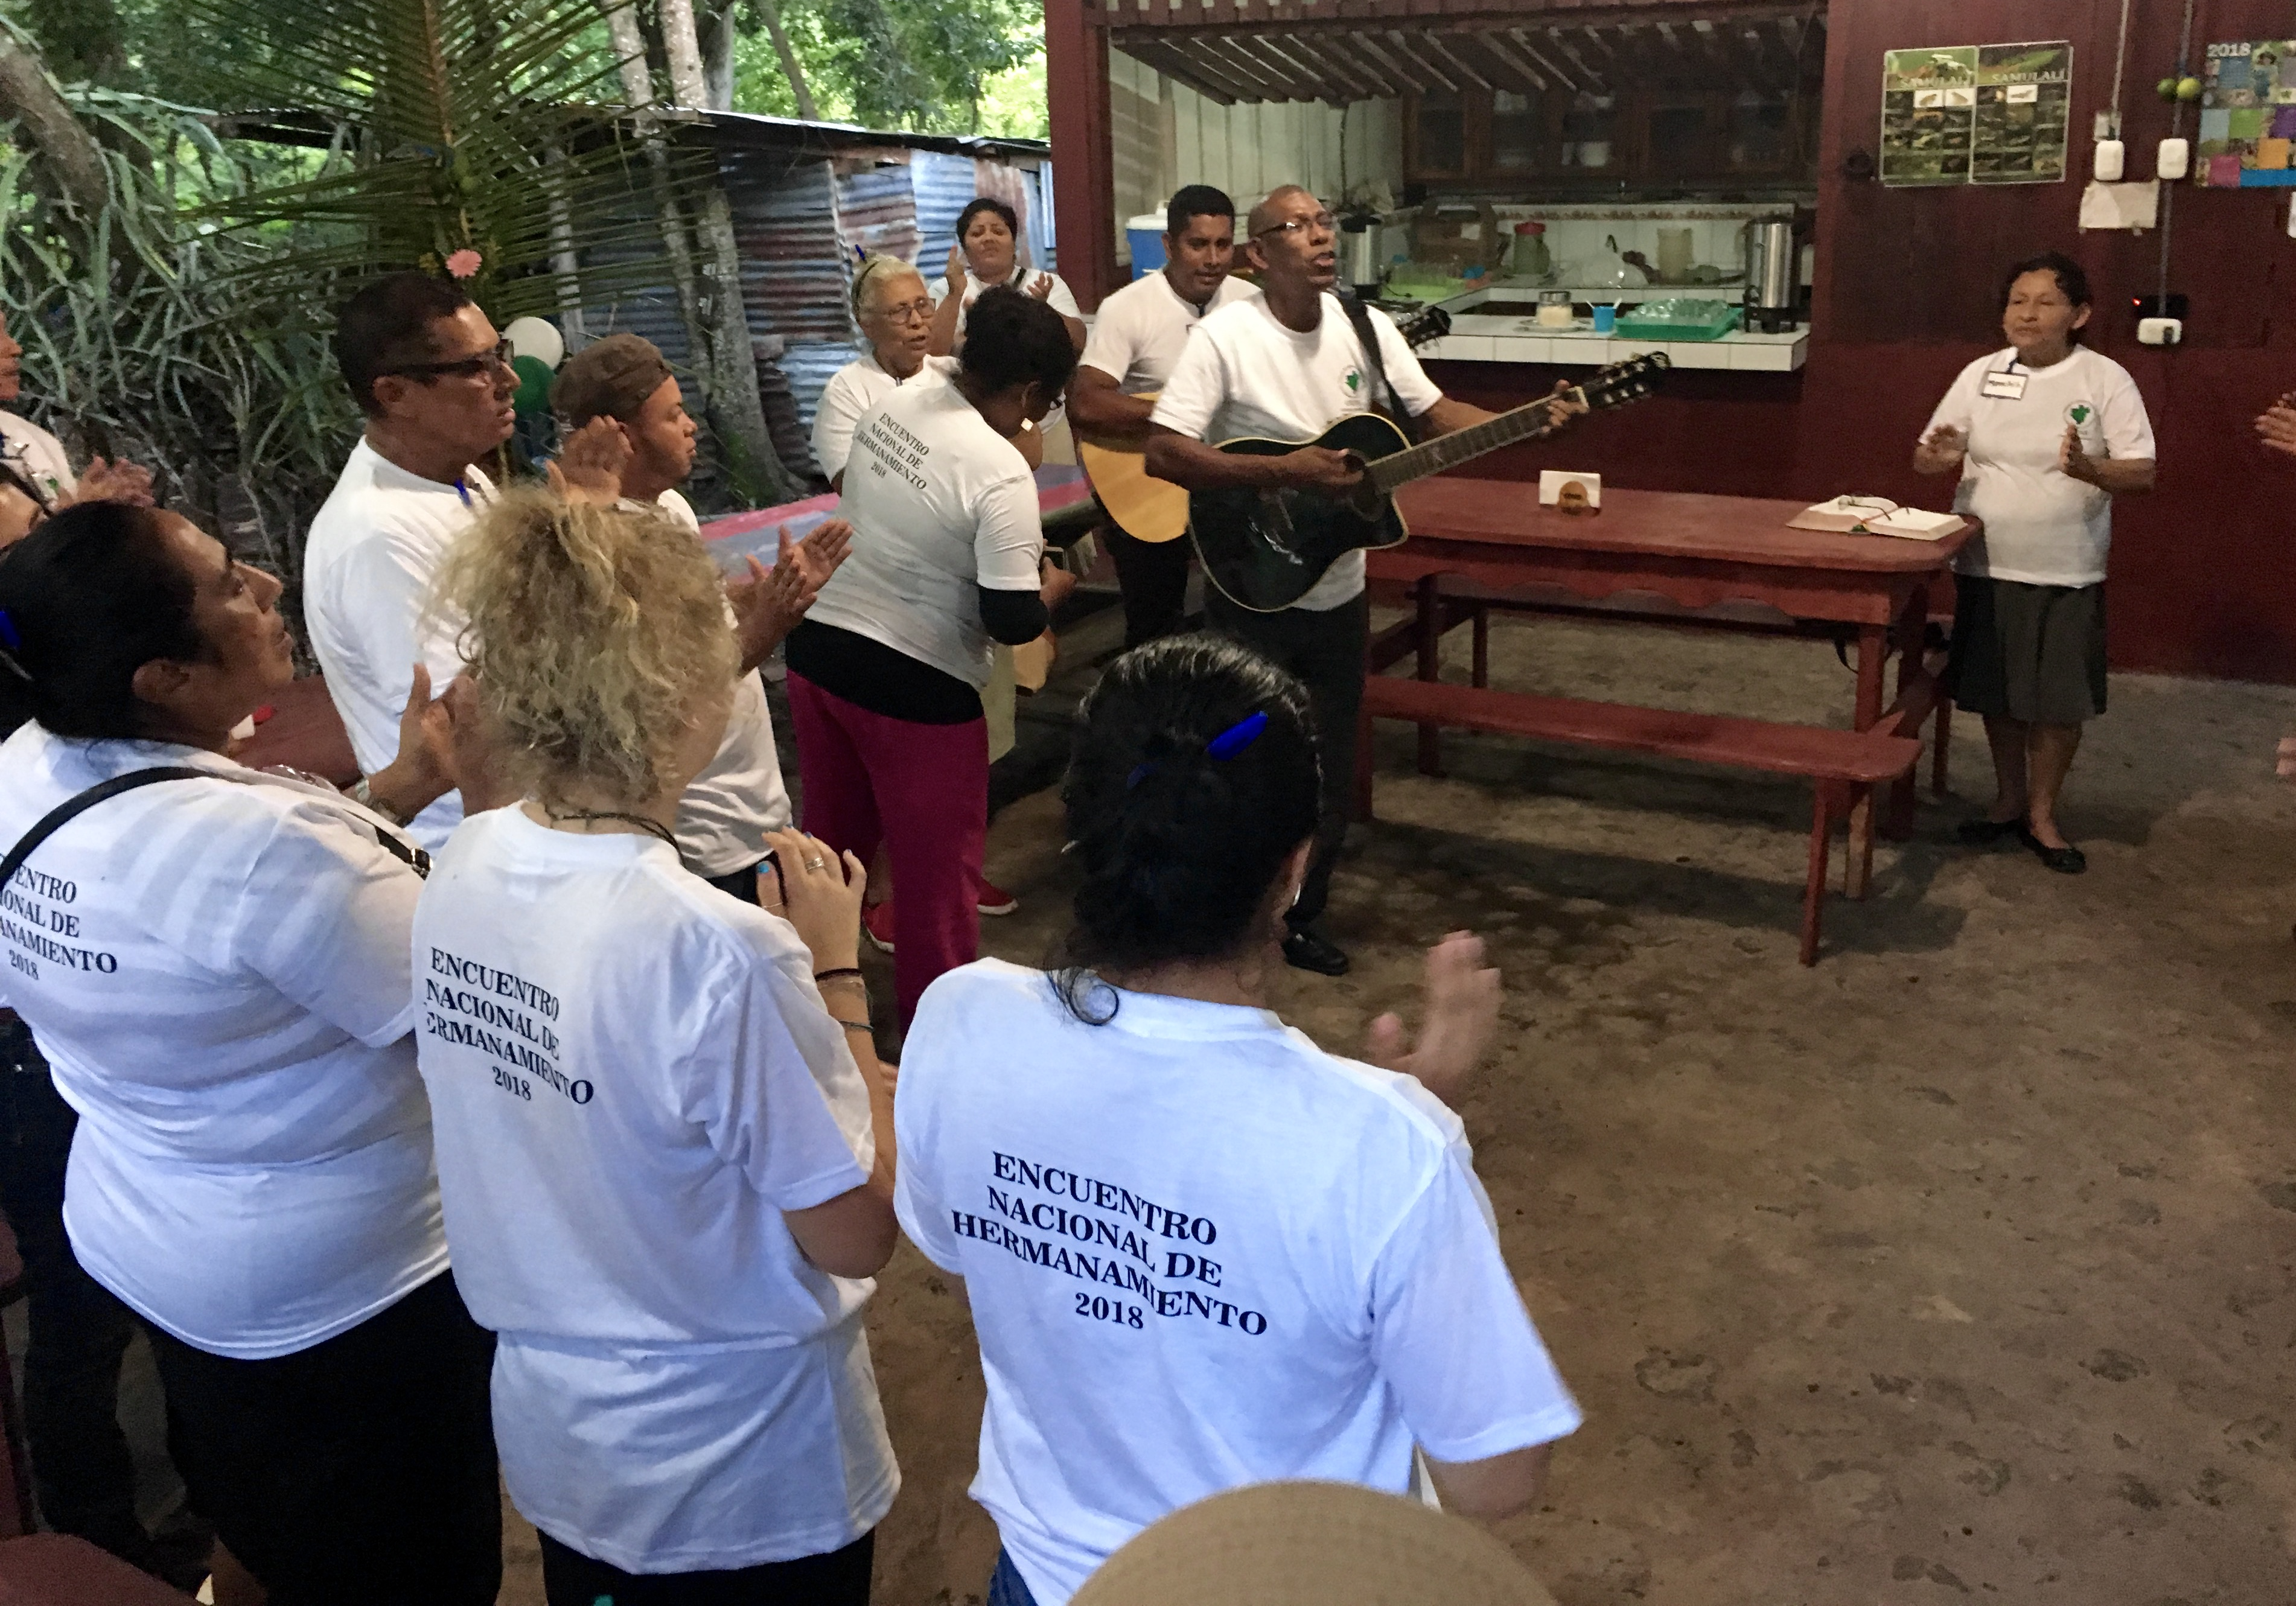 Pastor Moran Lampson from Bluefields leading the group in song before a meal together.